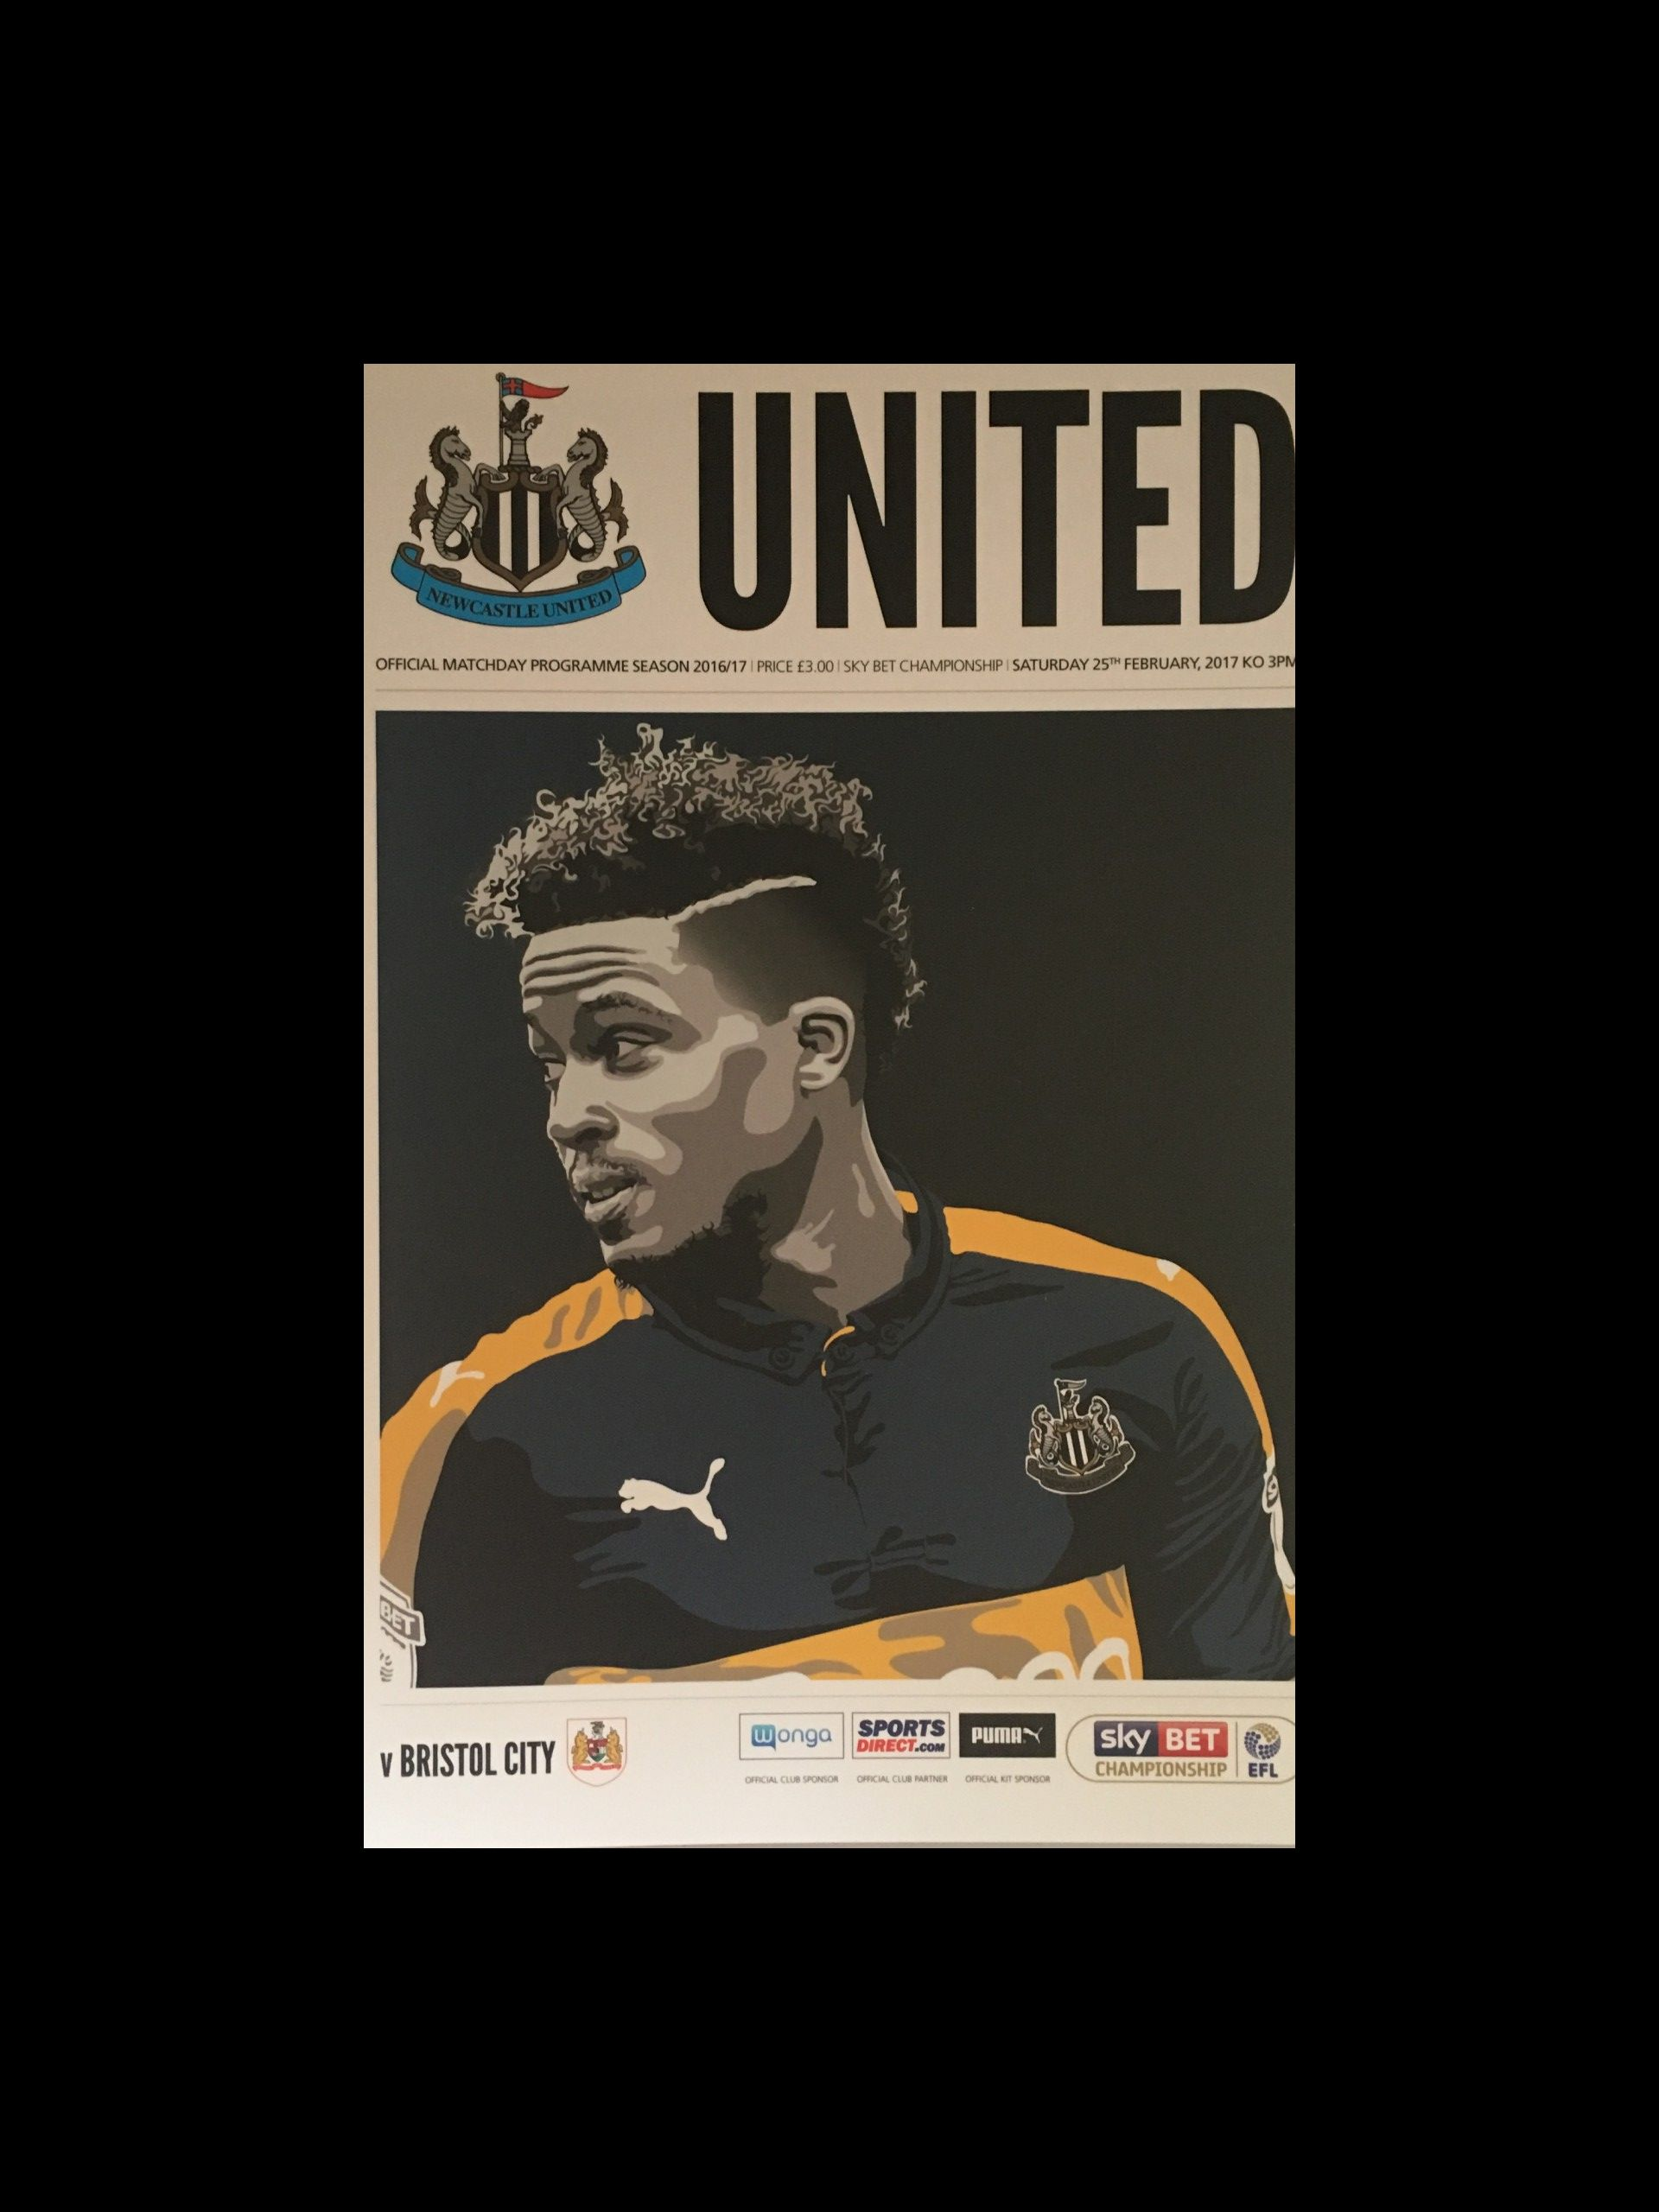 Newcastle United v Bristol City 25-02-17 Programme